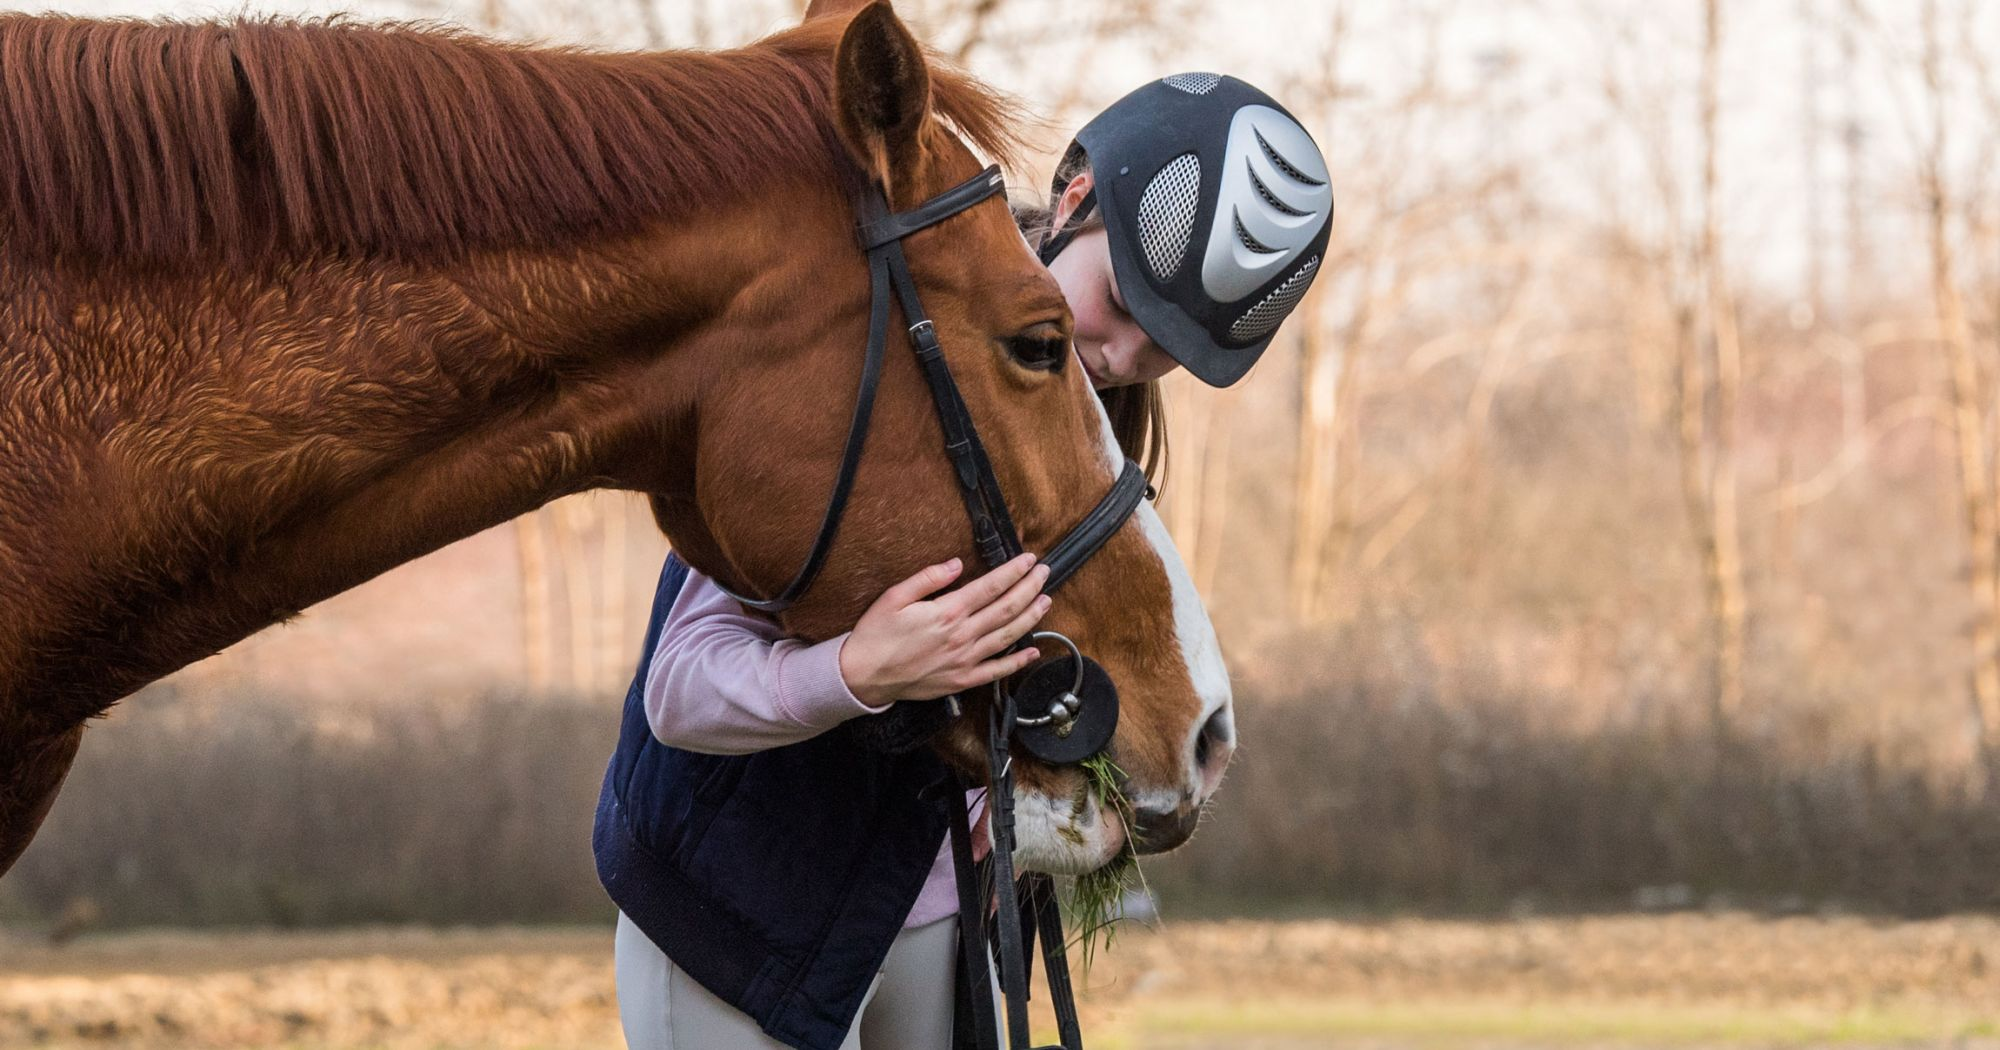 3 Exercises To Calm Down Your Hot Horse